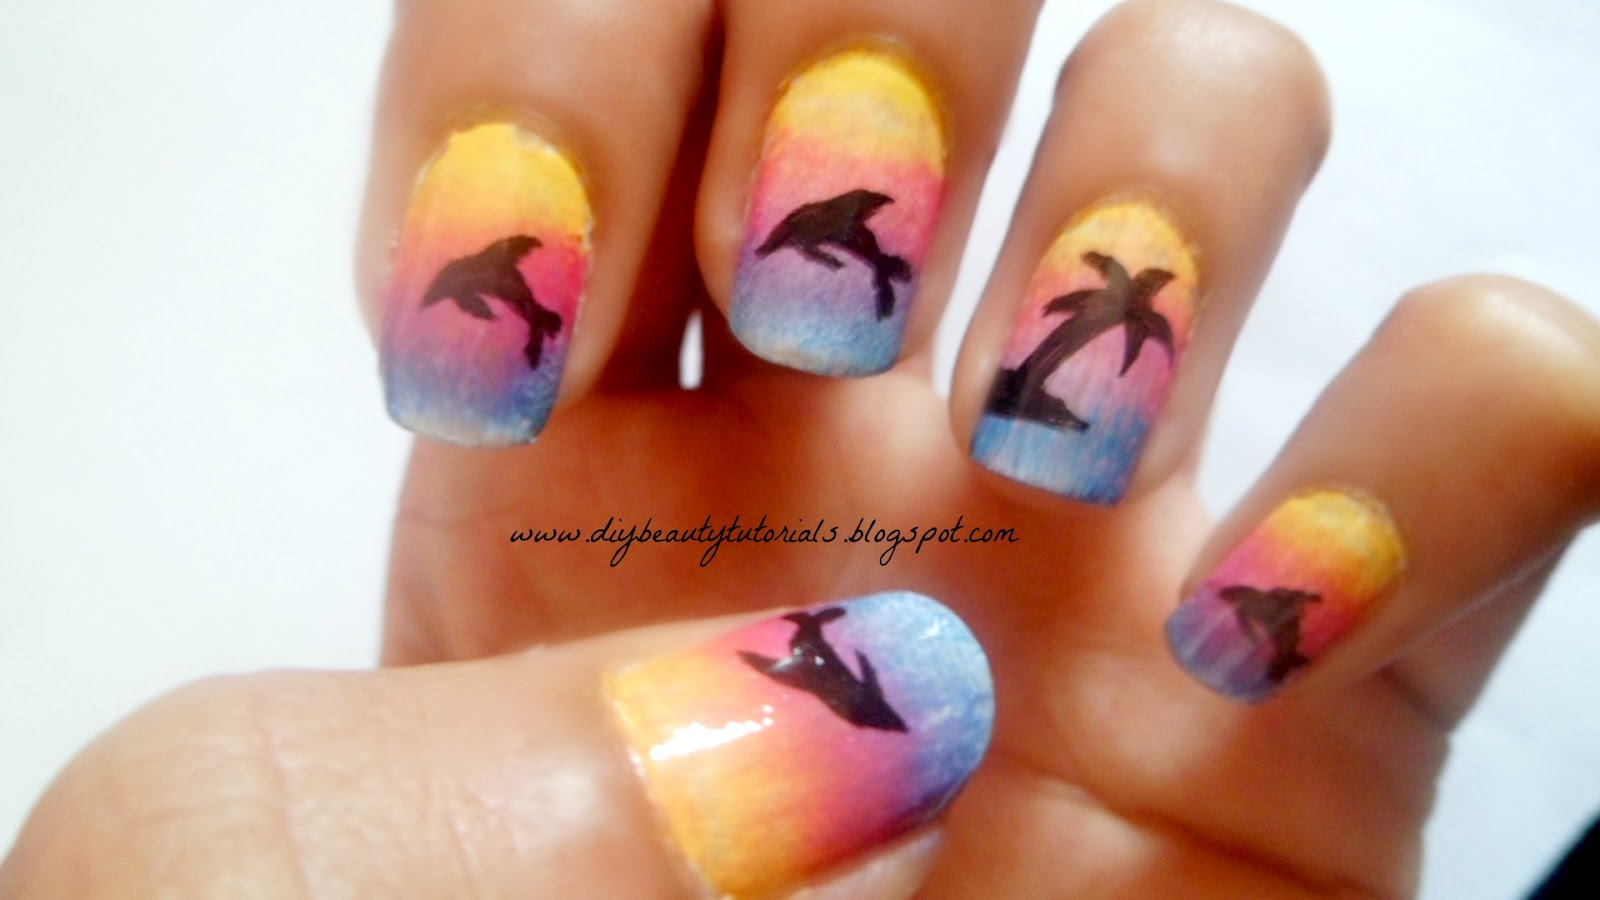 The Appealing Pretty fake nail designs Digital Photography